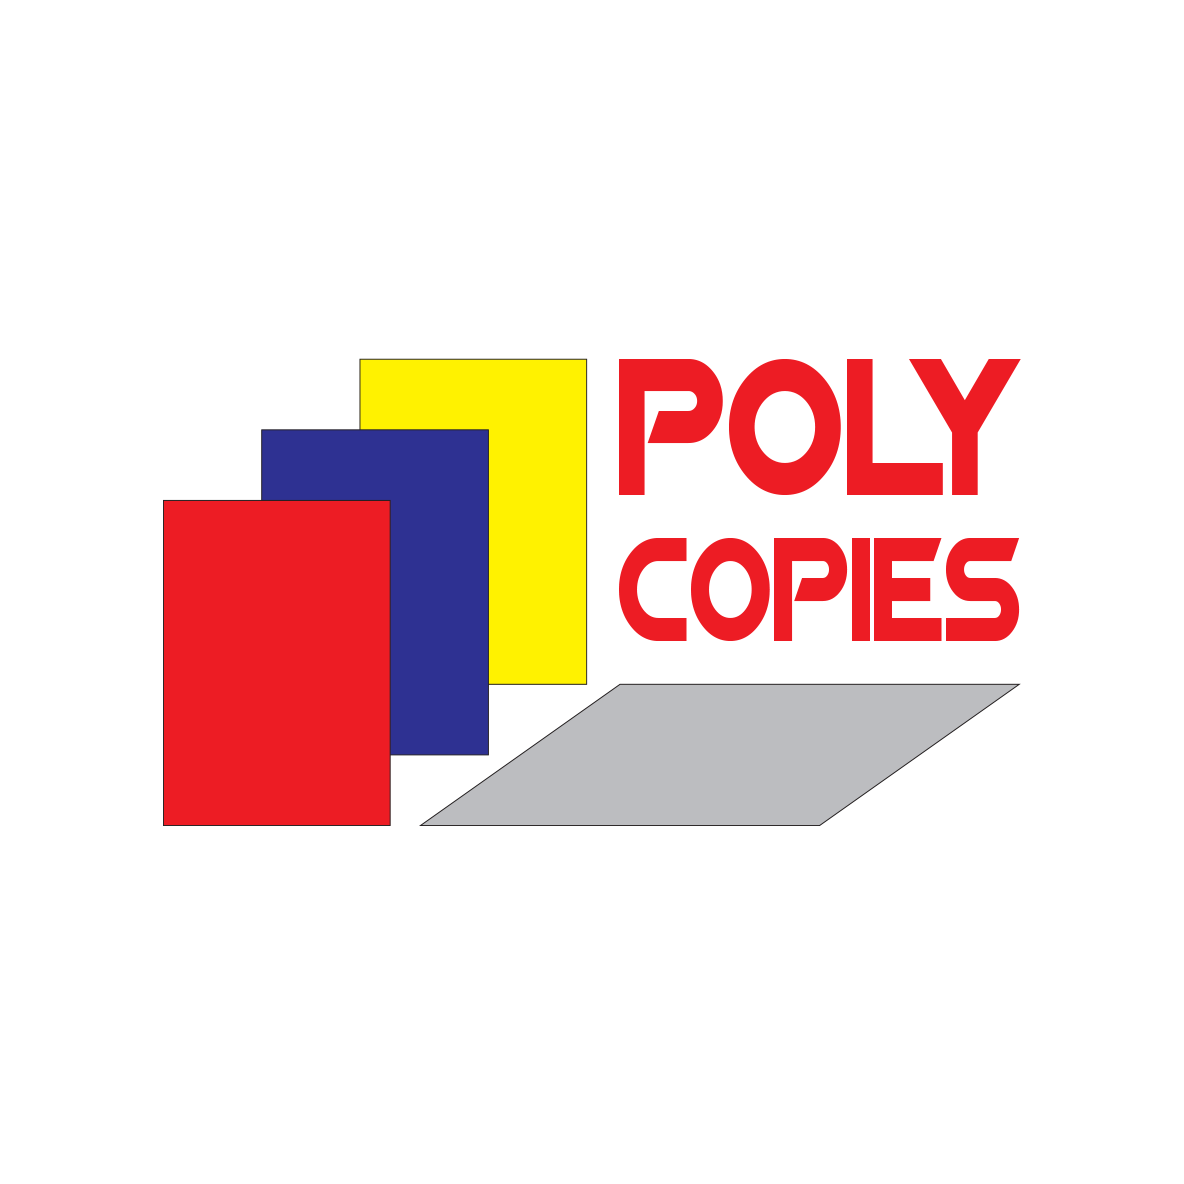 Poly-copies